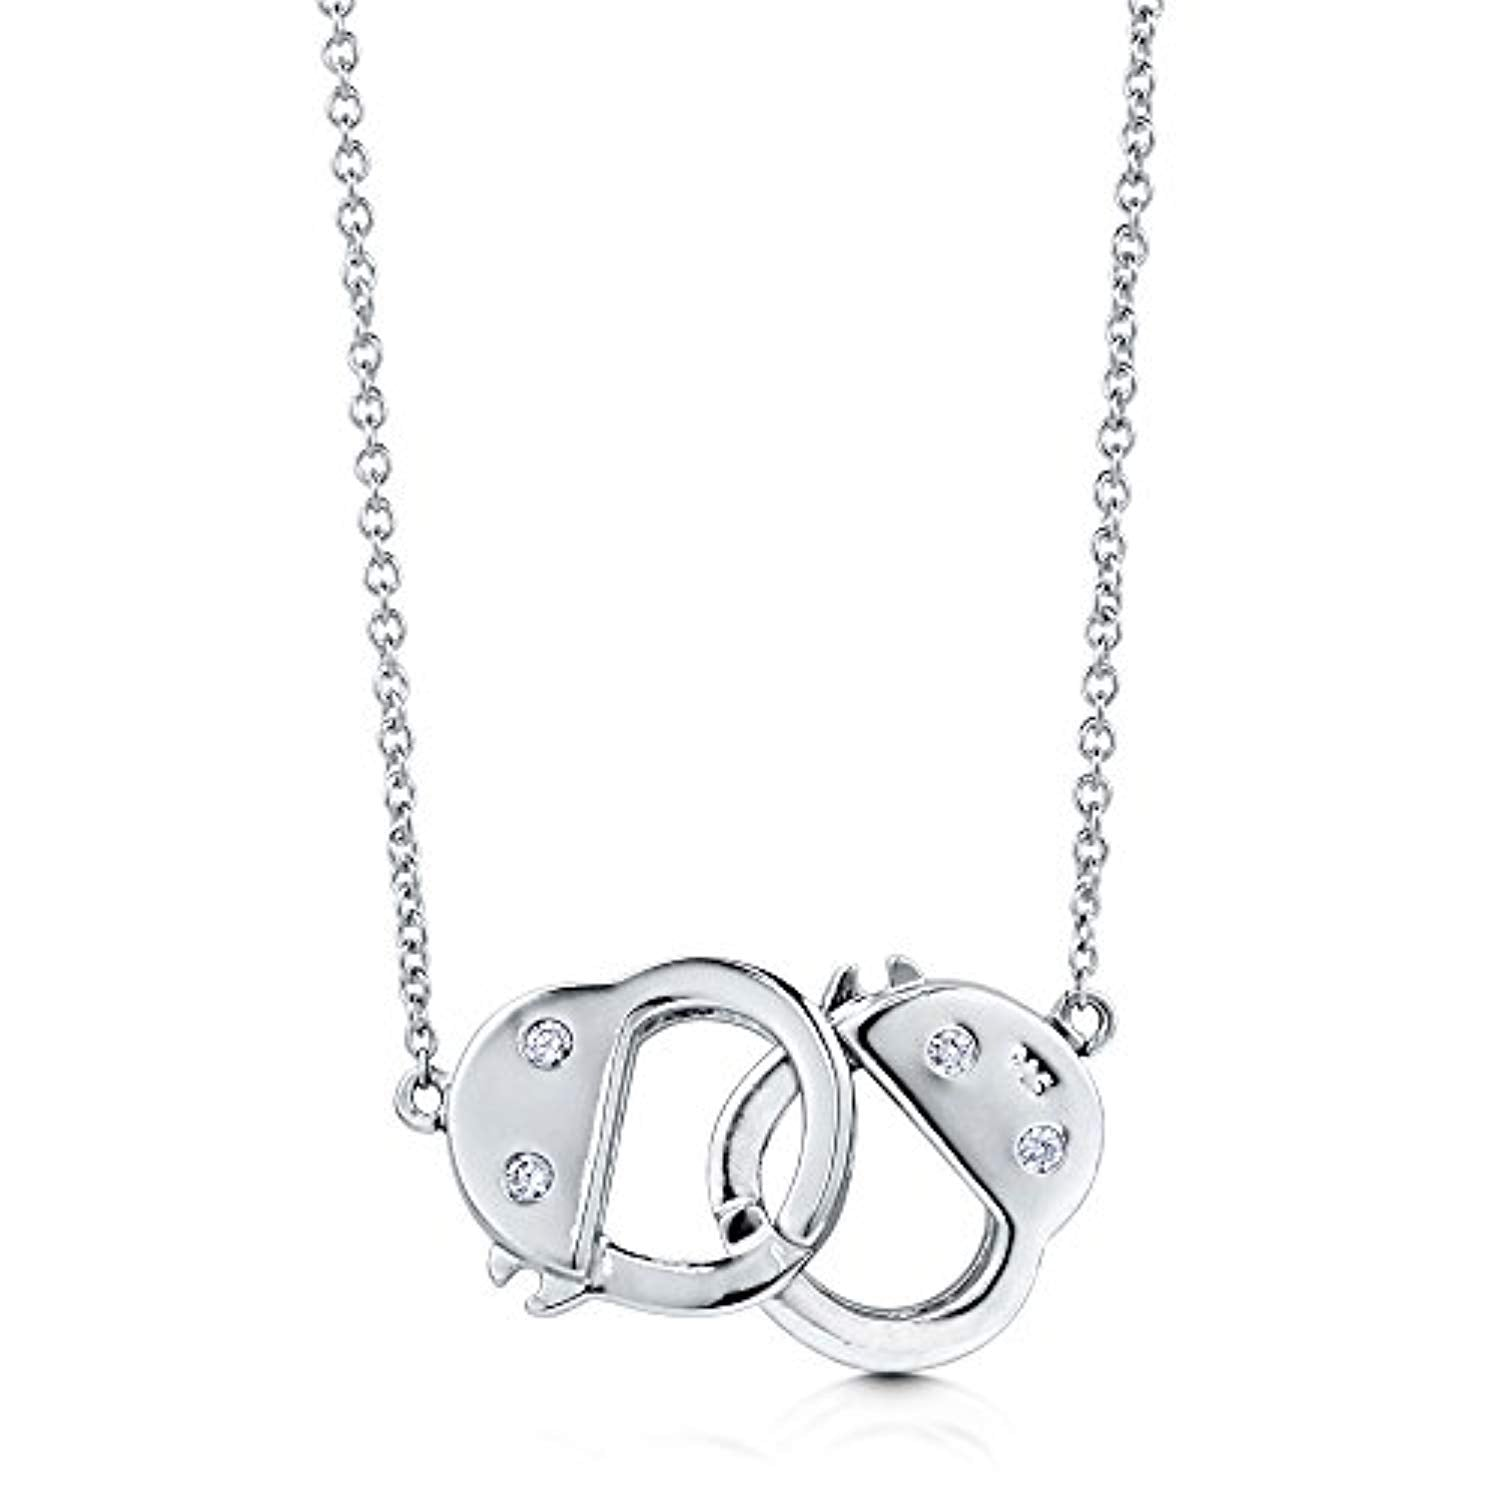 Silver CZ Handcuffs Pendant Necklace